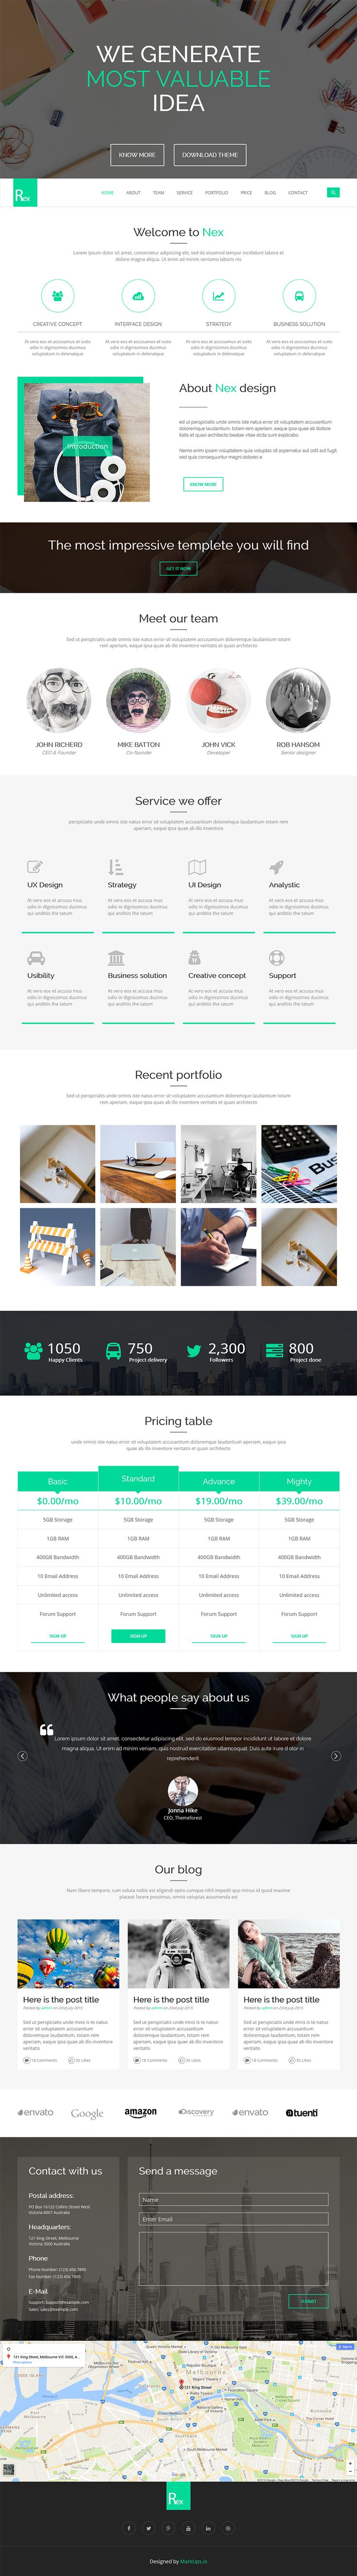 free multipurpose landing page html template rex graphicarmy - Free Html Pages